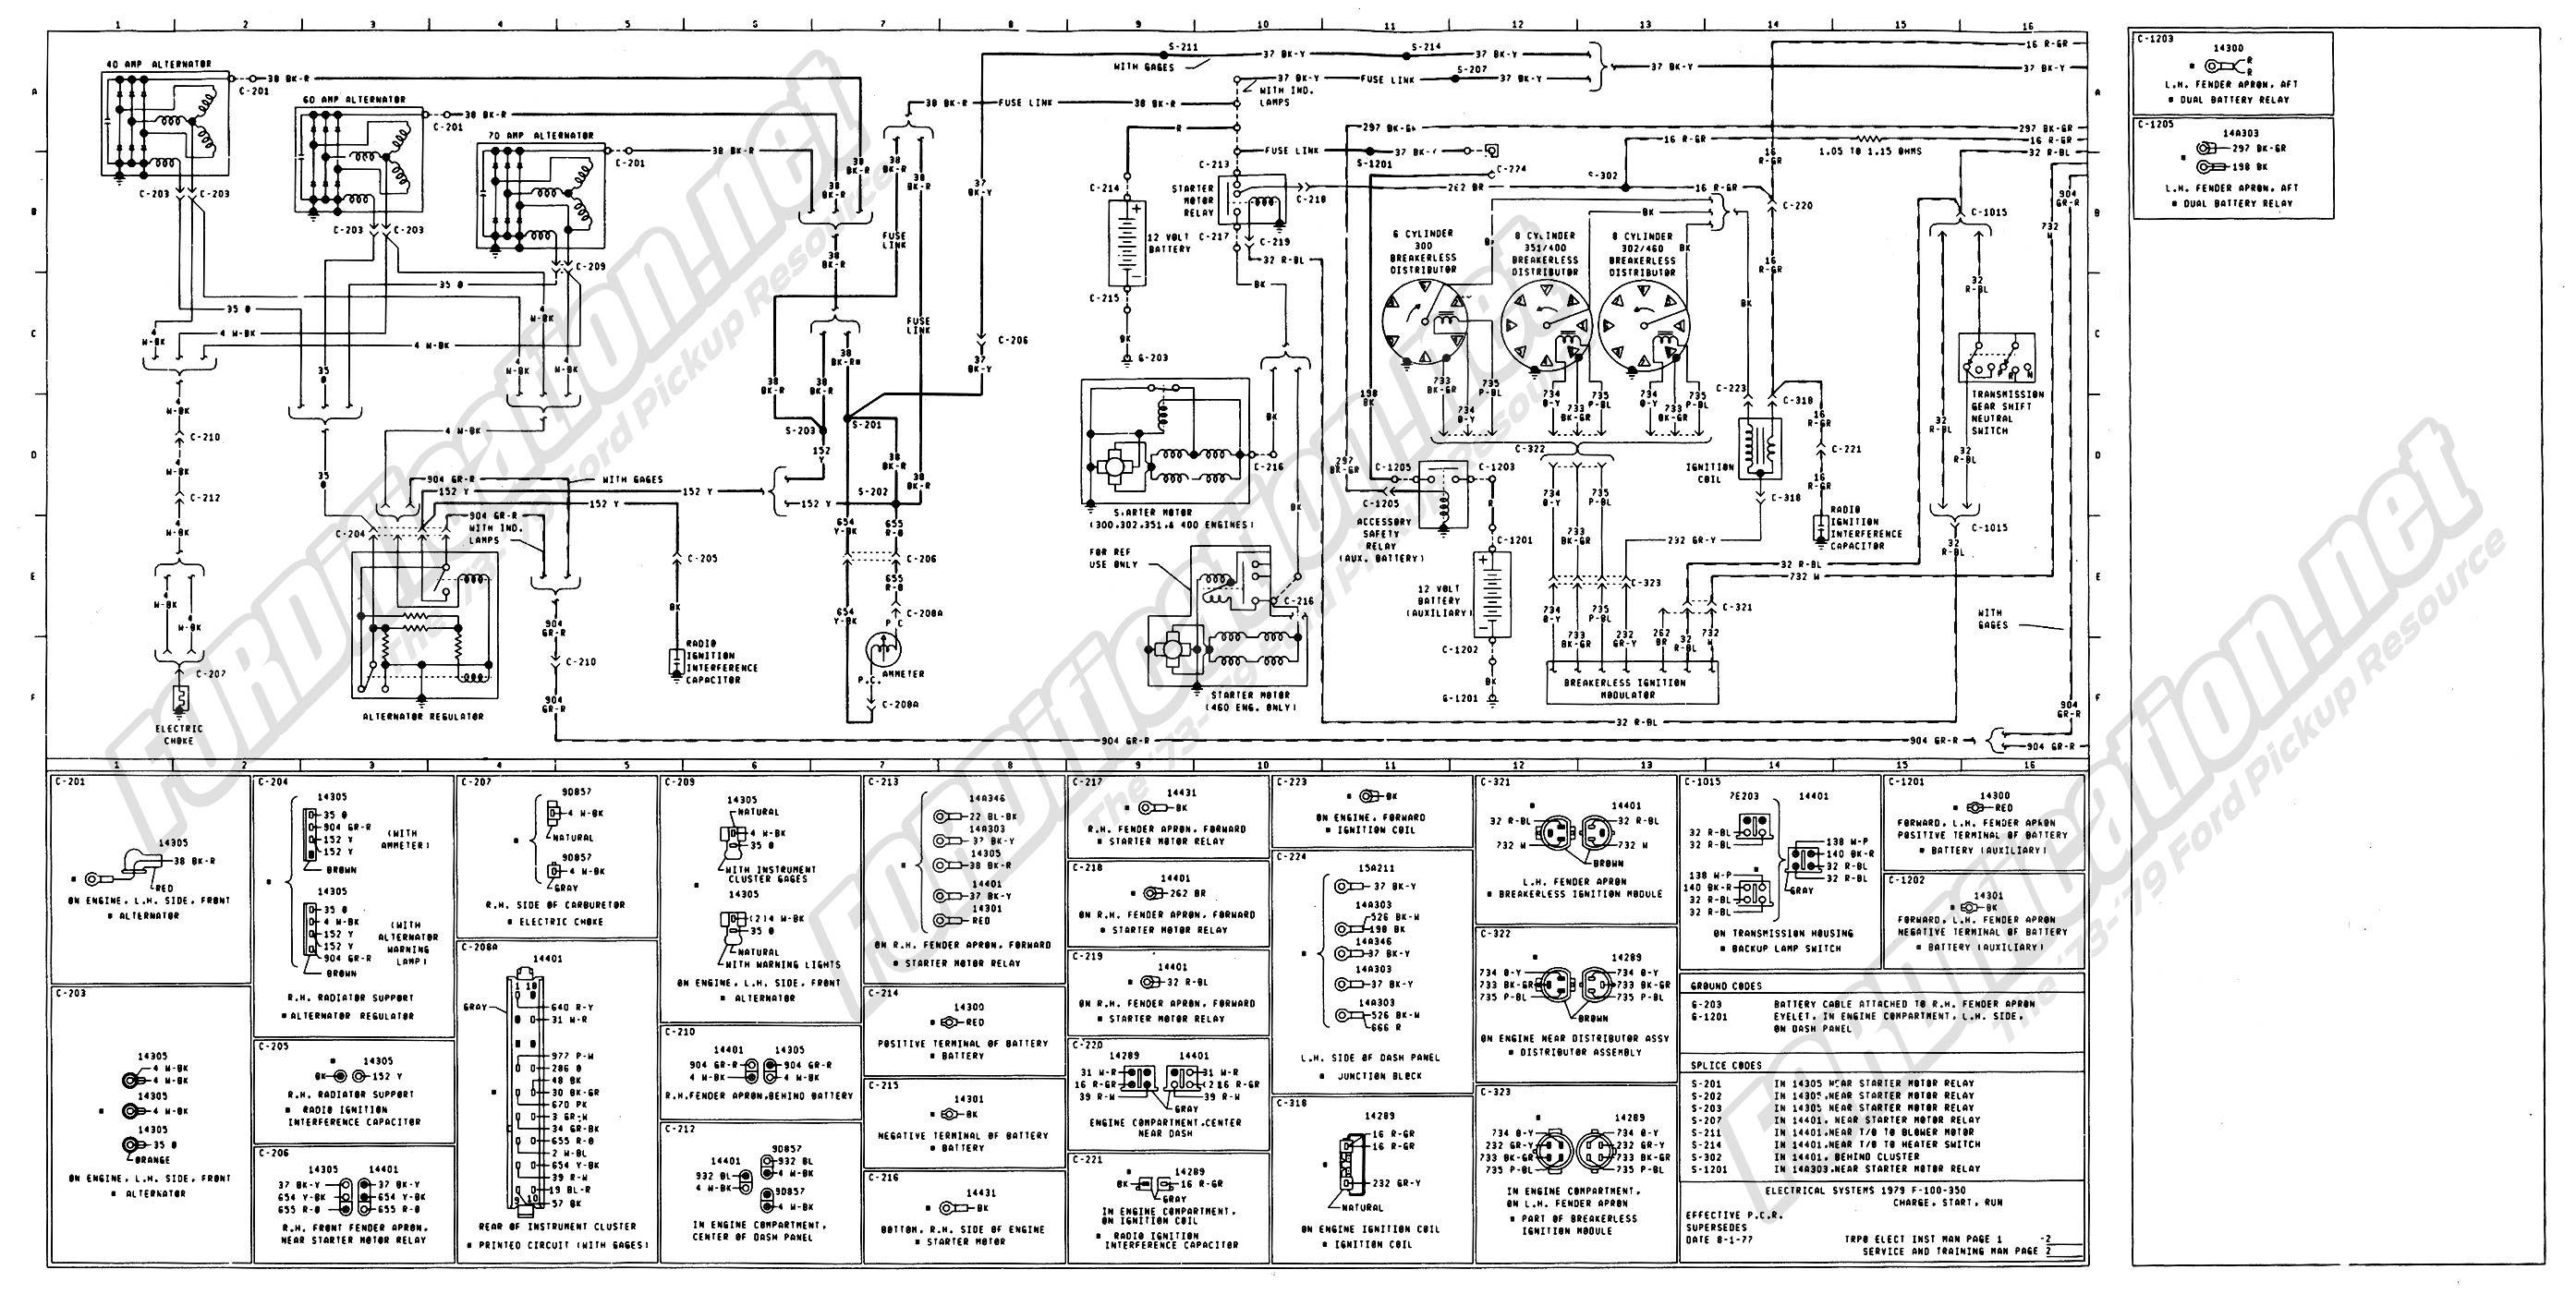 1973 1979 ford truck wiring diagrams schematics fordification net rh  fordification net 1973 Ford F-250 Schematics Ford F-250 Dash Schematics